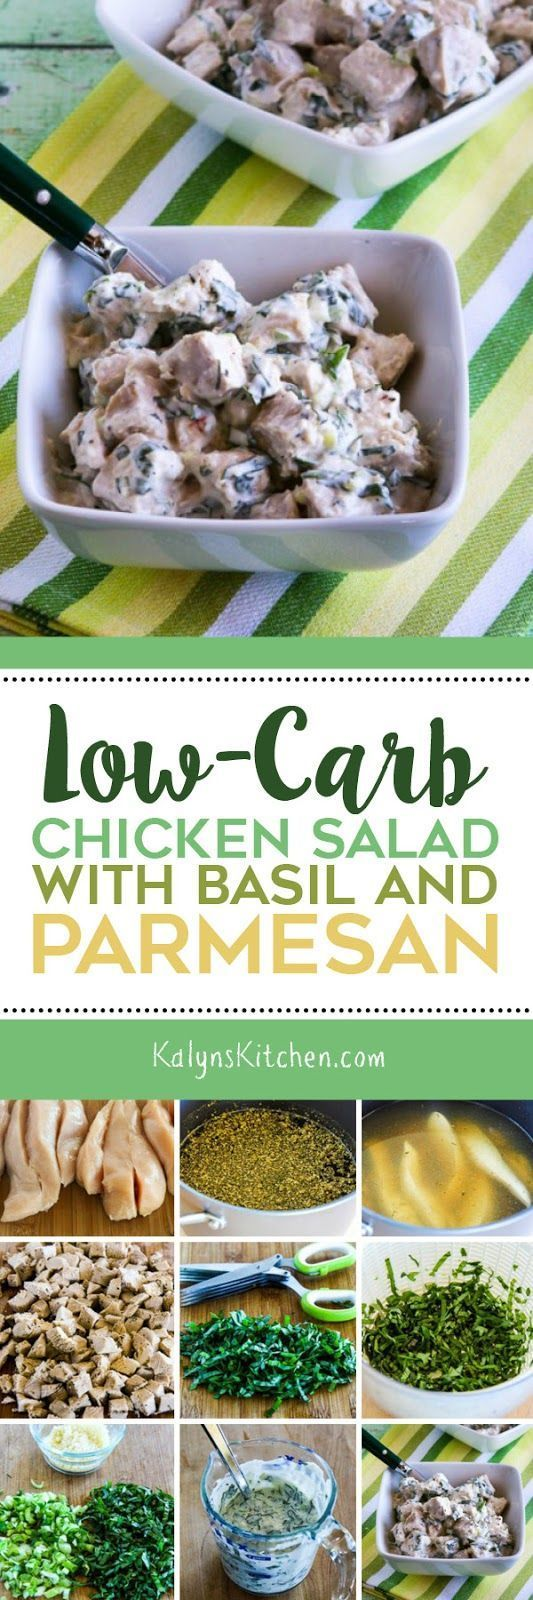 Low-Carb Chicken Salad with Basil and Parmesan is an absolute treat when you have fresh basil (maybe one of those plants from Trader Joe's if you don't have a garden!) And this tasty salad is low-carb, Keto, low-glycemic, gluten-free, and South Beach Diet friendly. [found on KalynsKitchen.com]